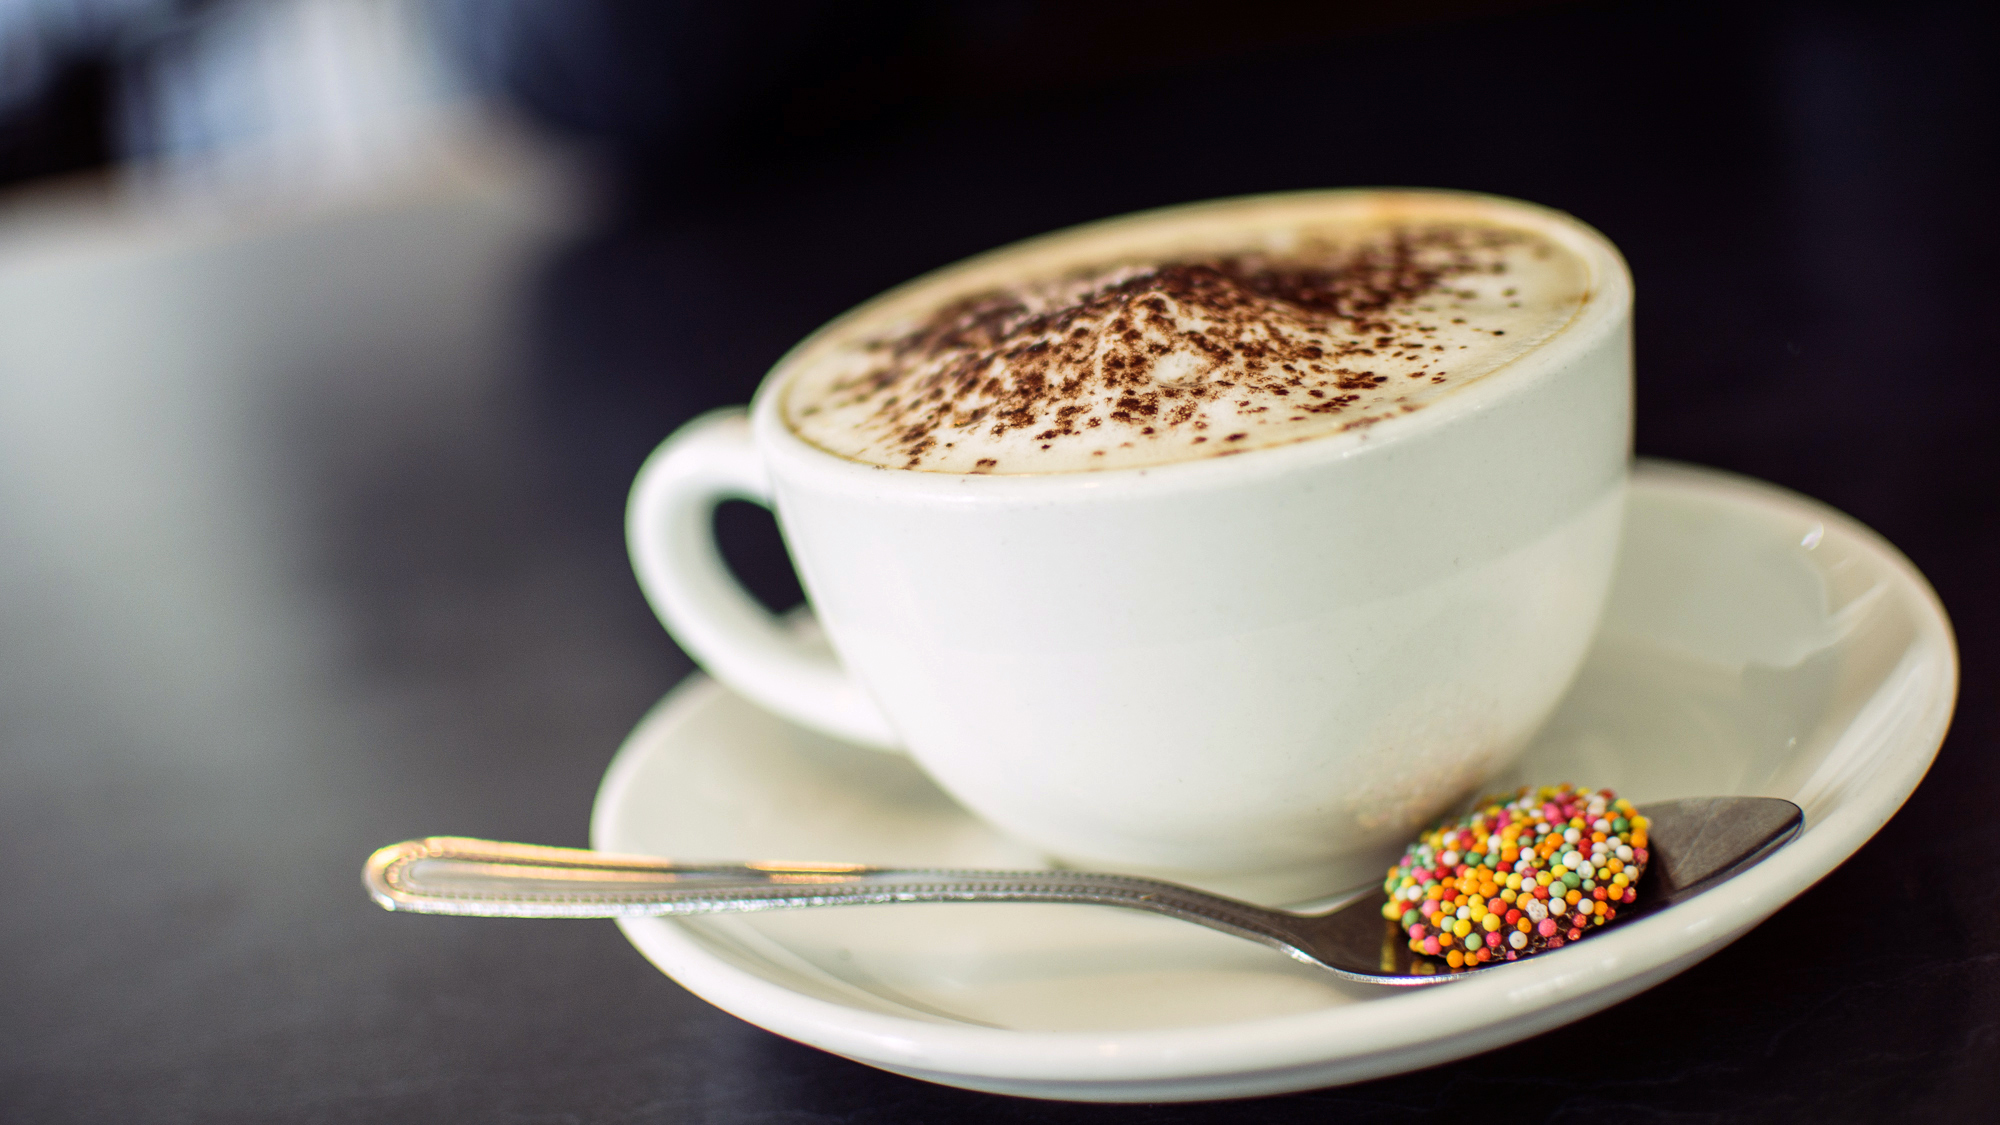 drink-cappuccino-coffee-mocha-candy-cup-saucer-spoon-sweet-picture-hd-wallpaper-